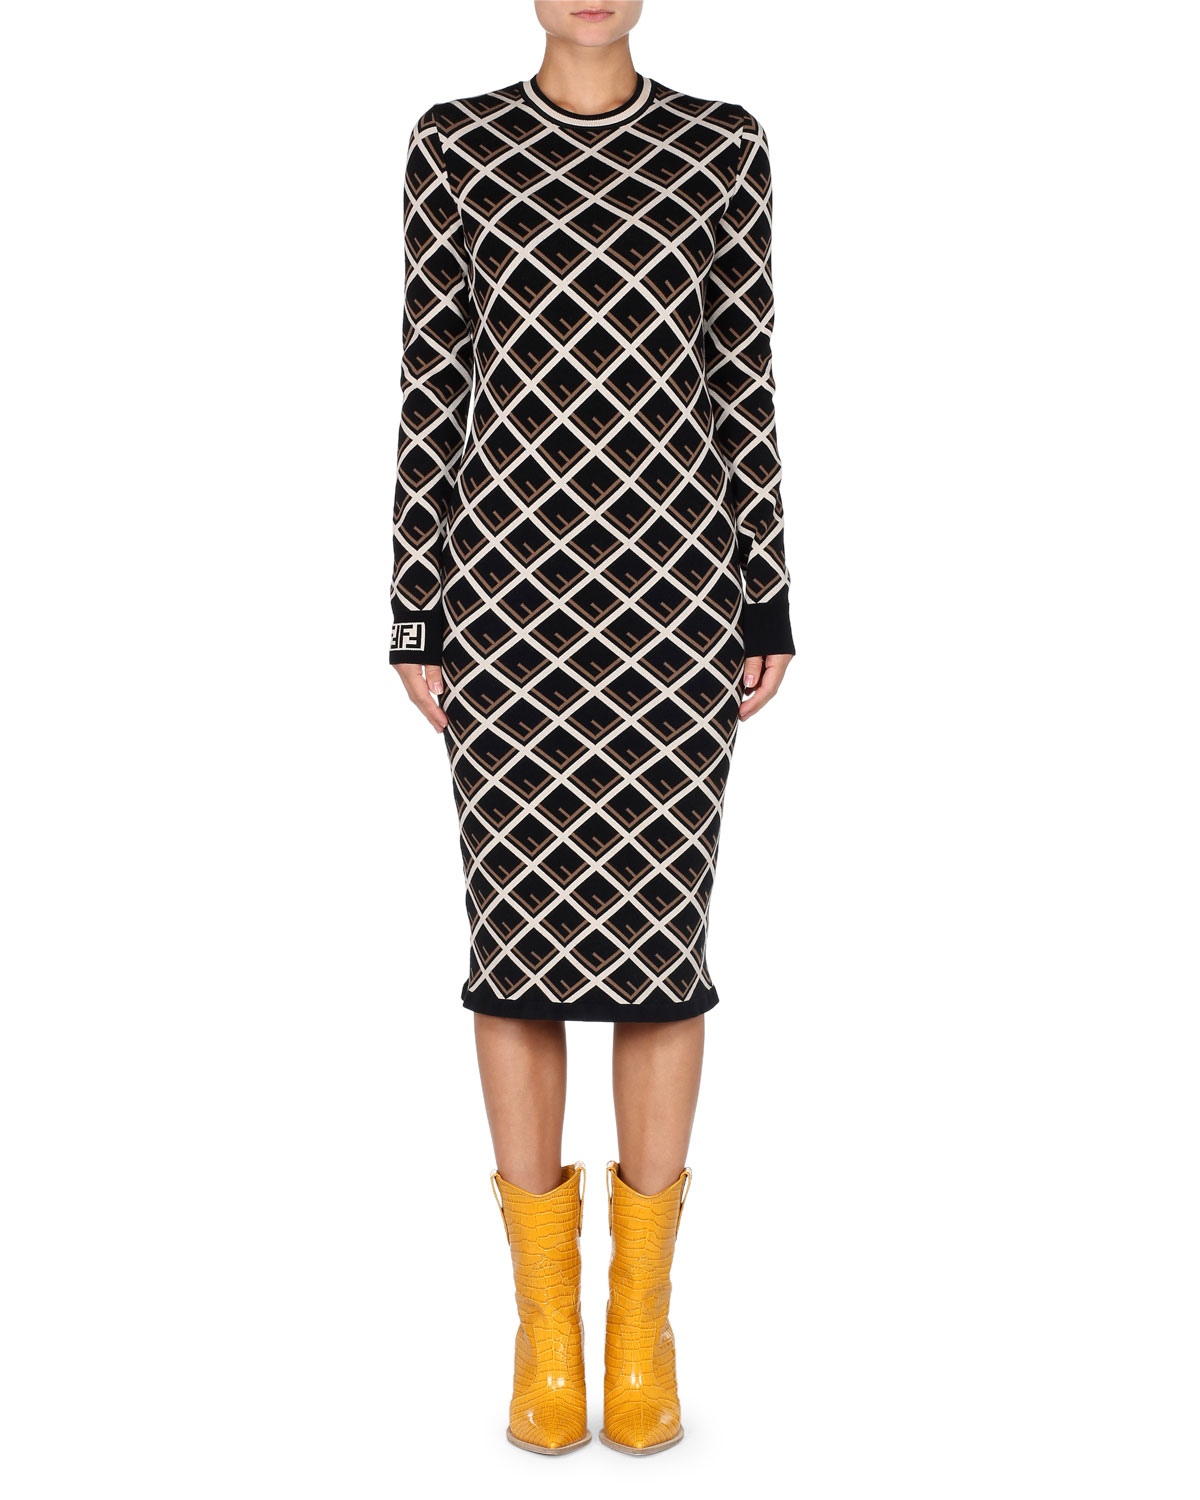 FENDI LONG-SLEEVE LOGO-KNIT MIDI DRESS